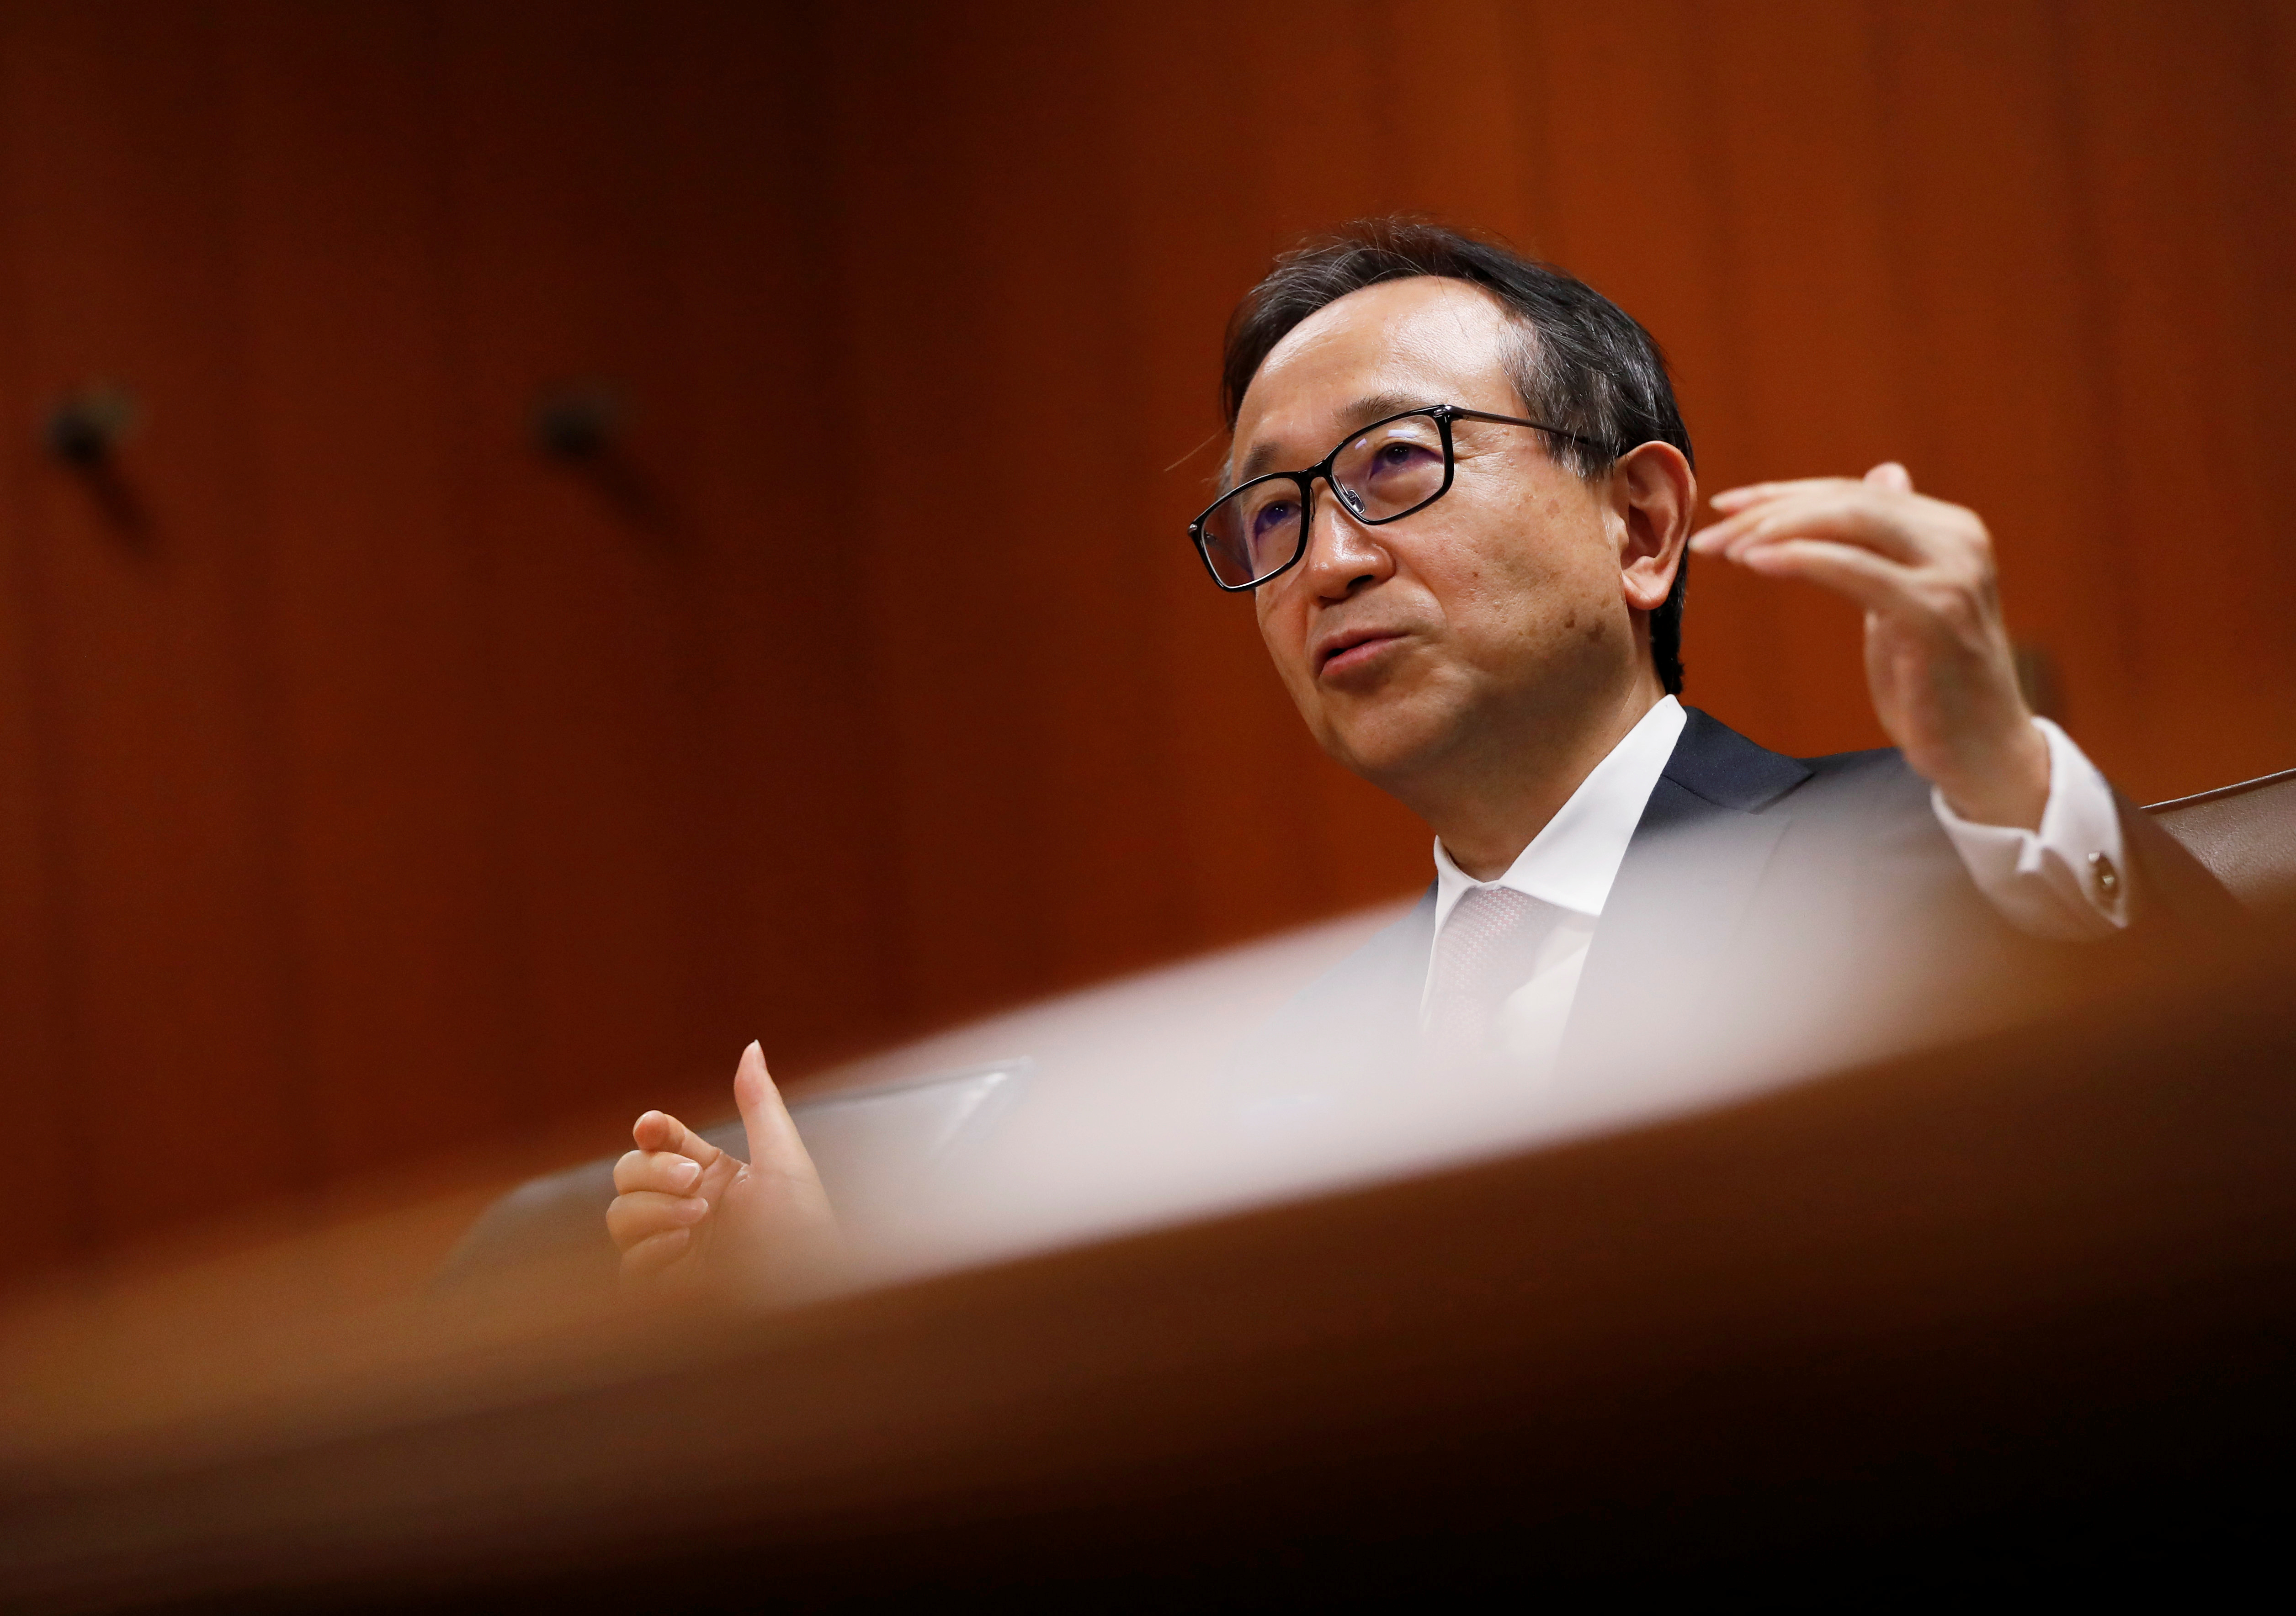 Mitsubishi UFJ Financial Group, Inc. (MUFG) President and Group CEO Hironori Kamezawa speaks during an interview with Reuters in Tokyo, Japan July 9, 2020. Picture taken July 9, 2020. REUTERS/Issei Kato